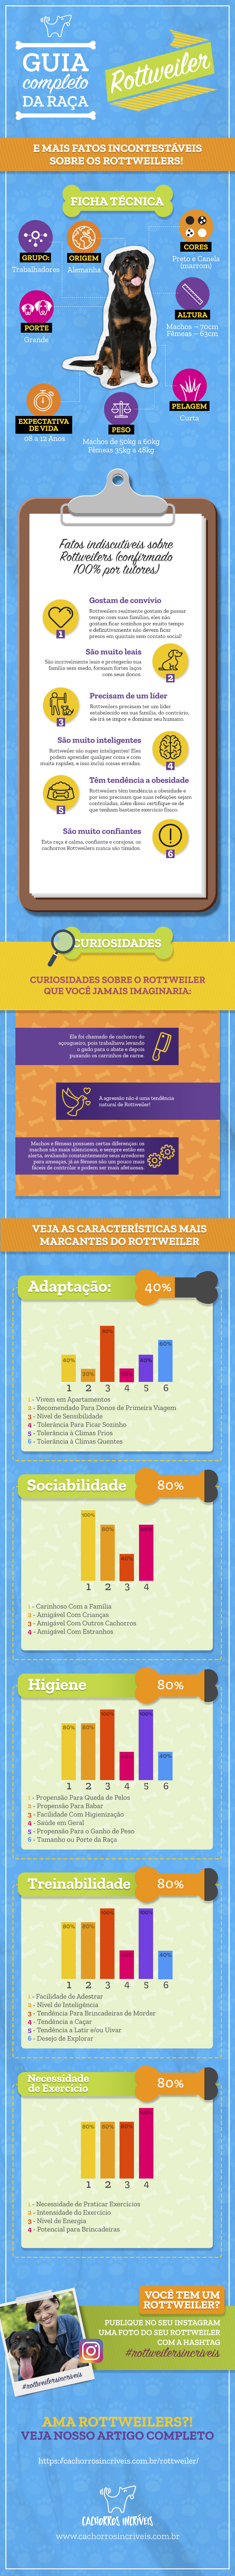 infográfico rottweilwer